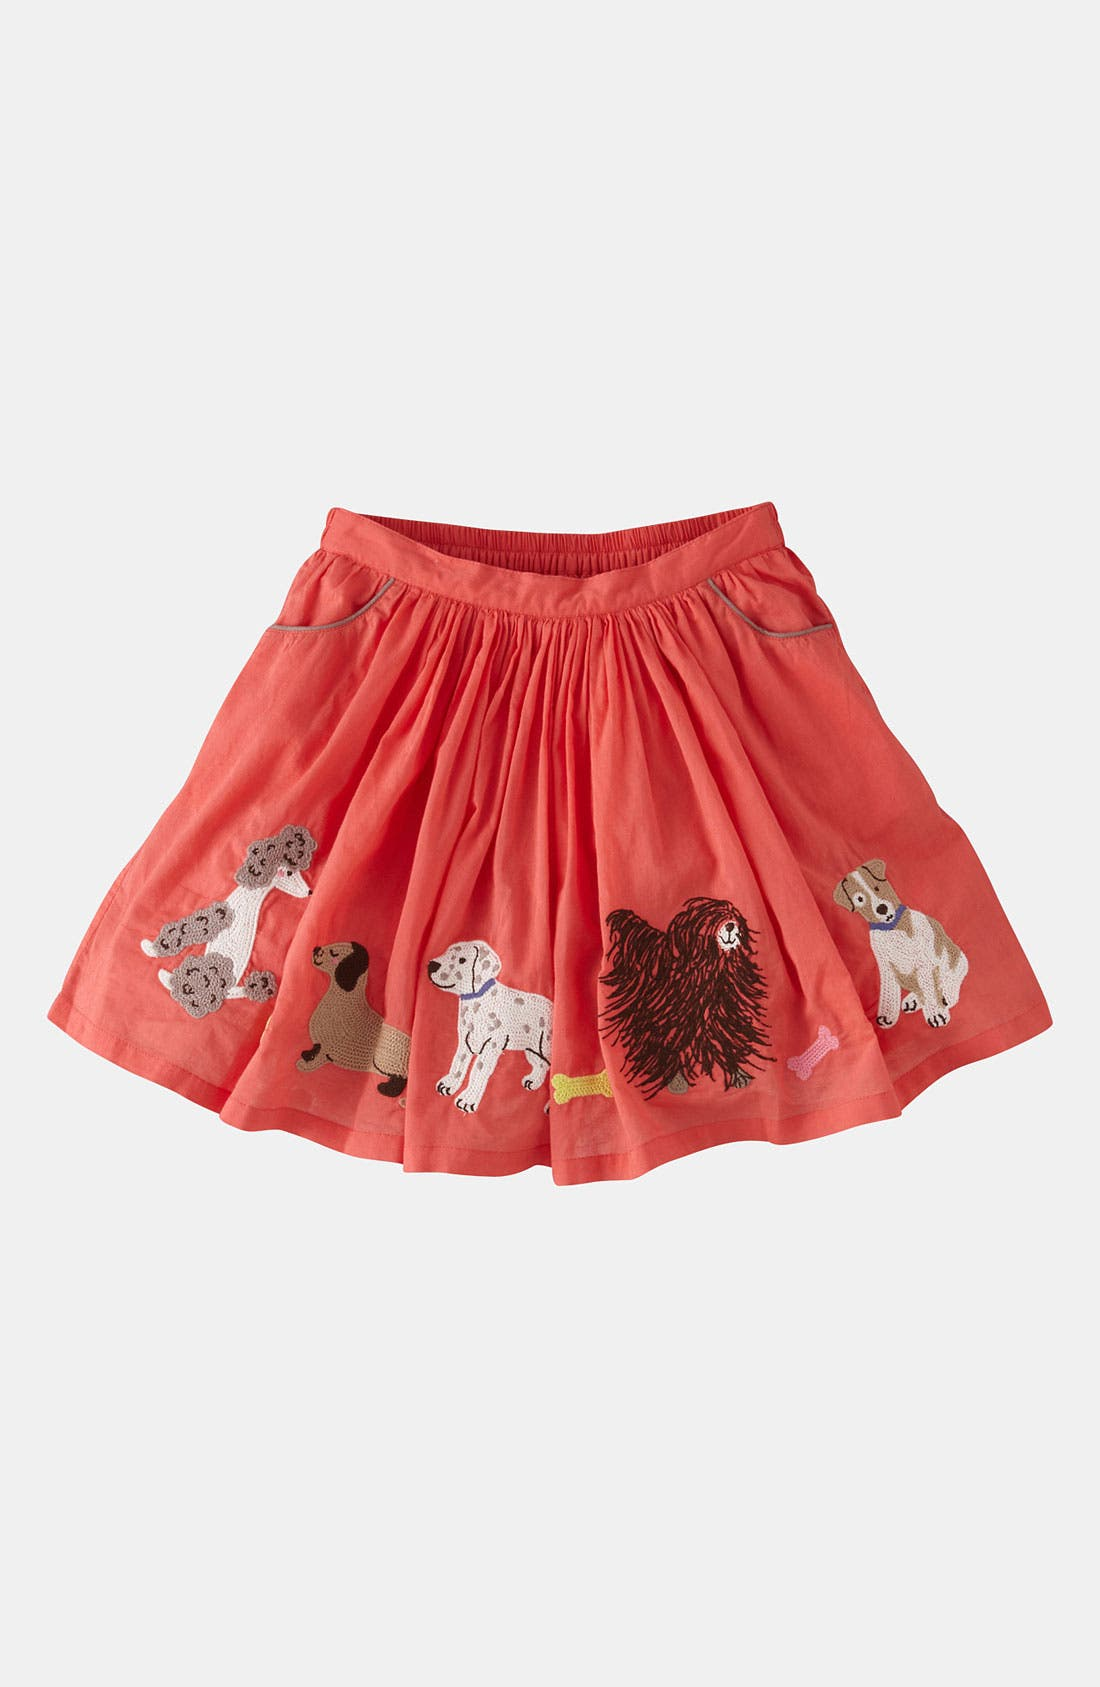 Alternate Image 1 Selected - Mini Boden Embroidered Skirt (Little Girls & Big Girls)